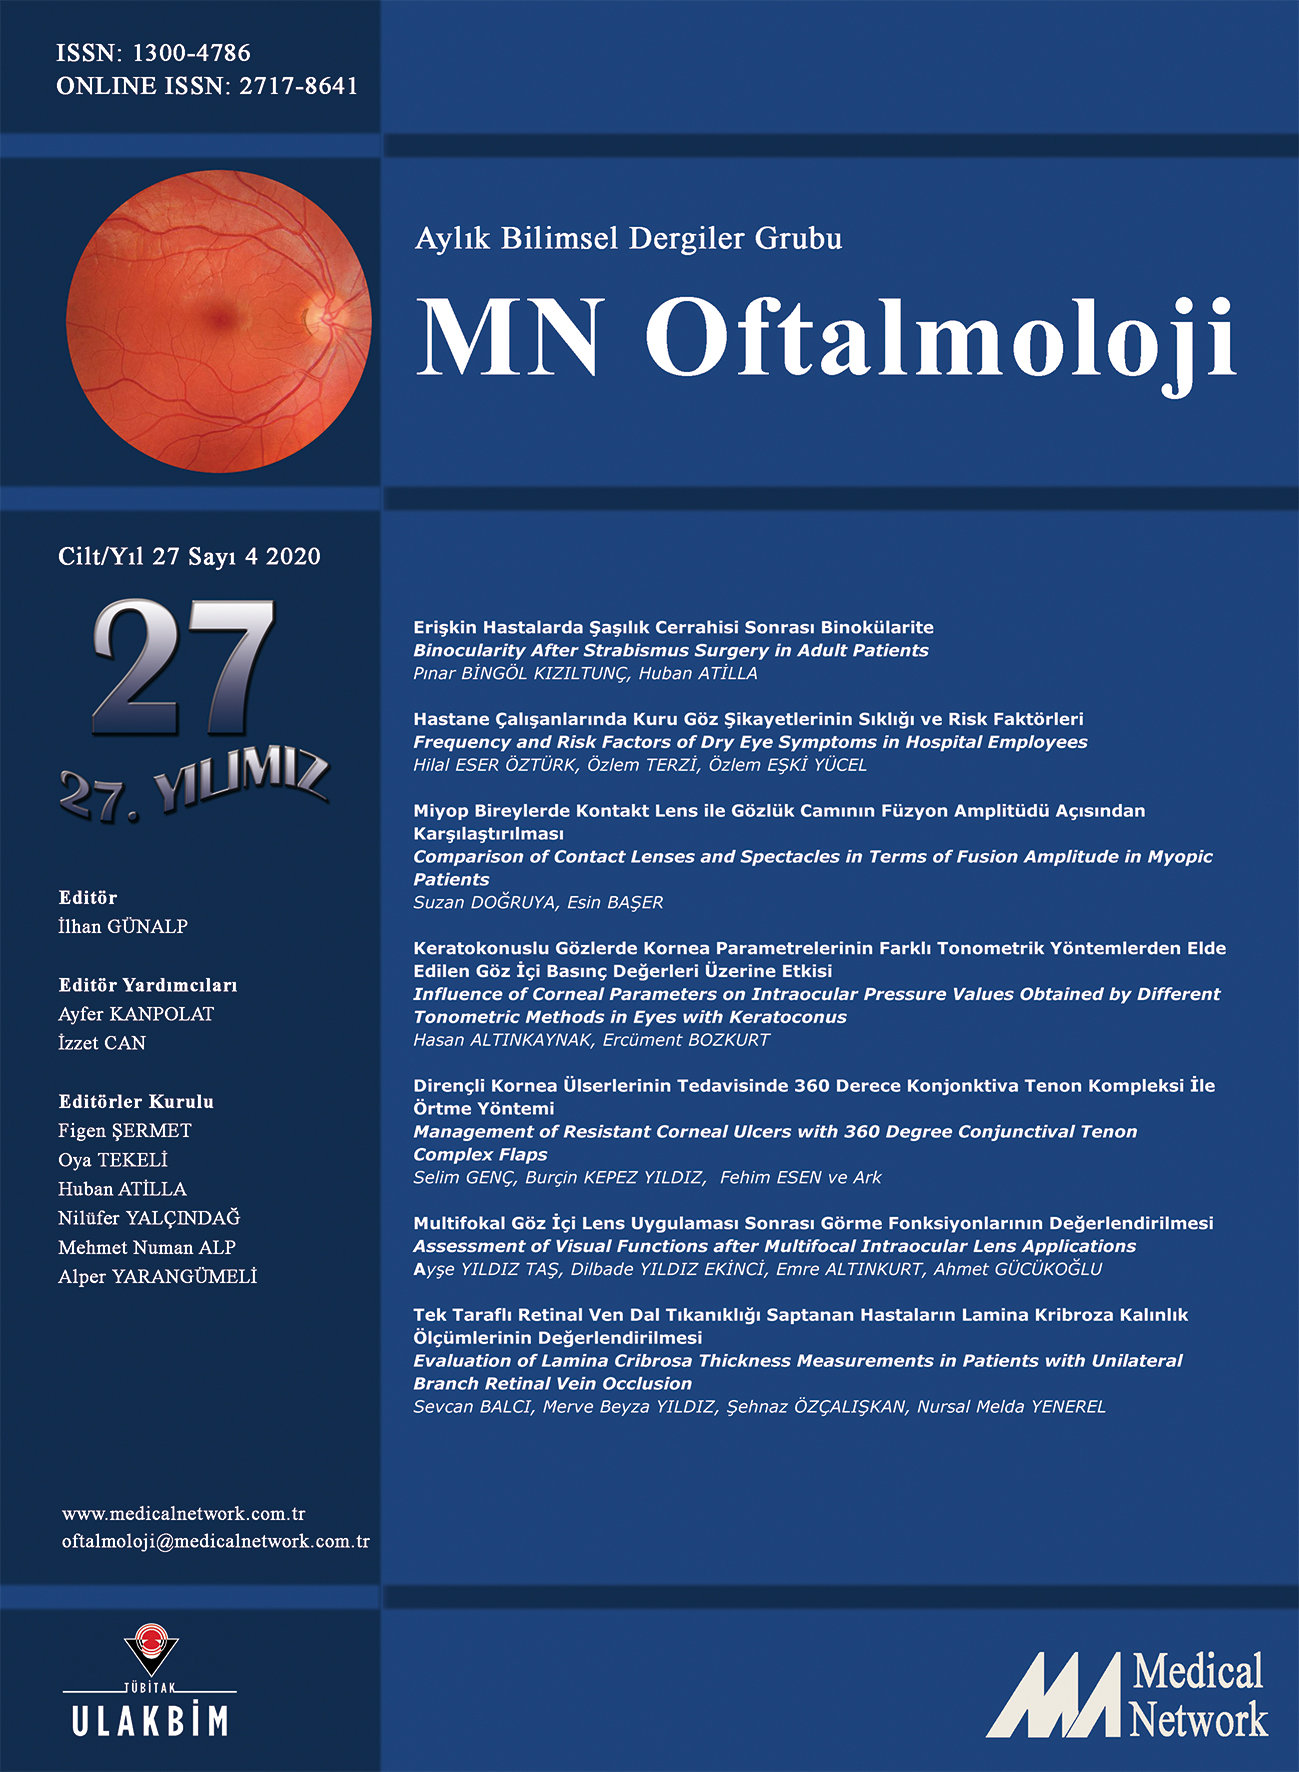 <p>MN Oftalmoloji Cilt: 27 Sayı: 4 2020 (MN Ophthalmology Volume: 27 No: 4 2020)</p>